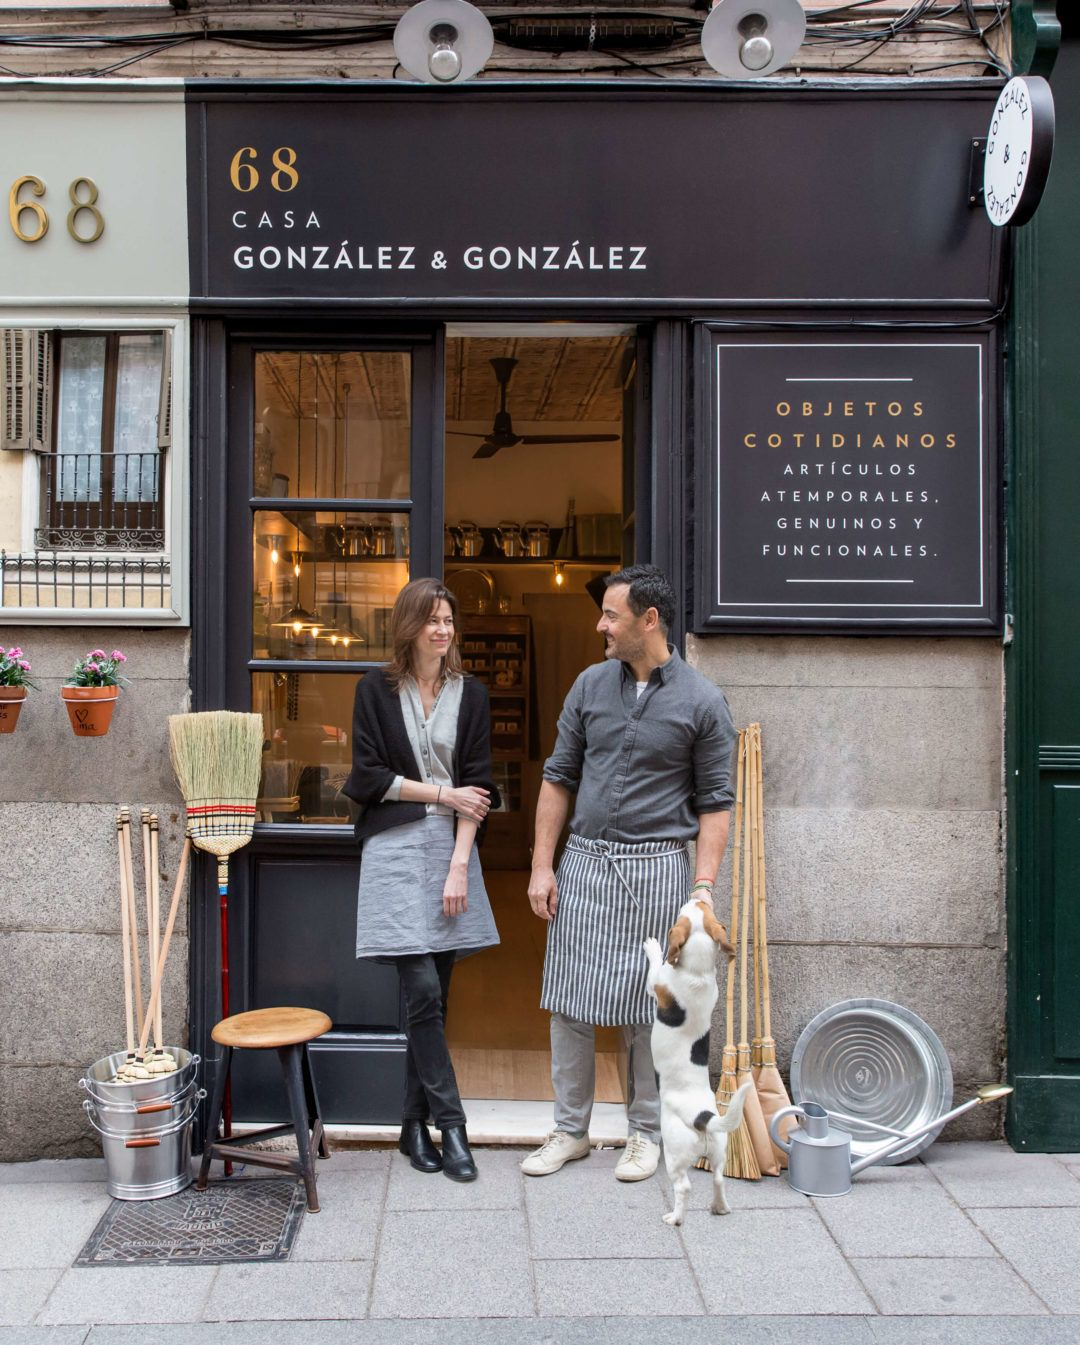 Maria Rosa And Javier Shopkeepers At Casa Gonzalez Gonzalez Coffee Shop Cafe Design Mini Cafe